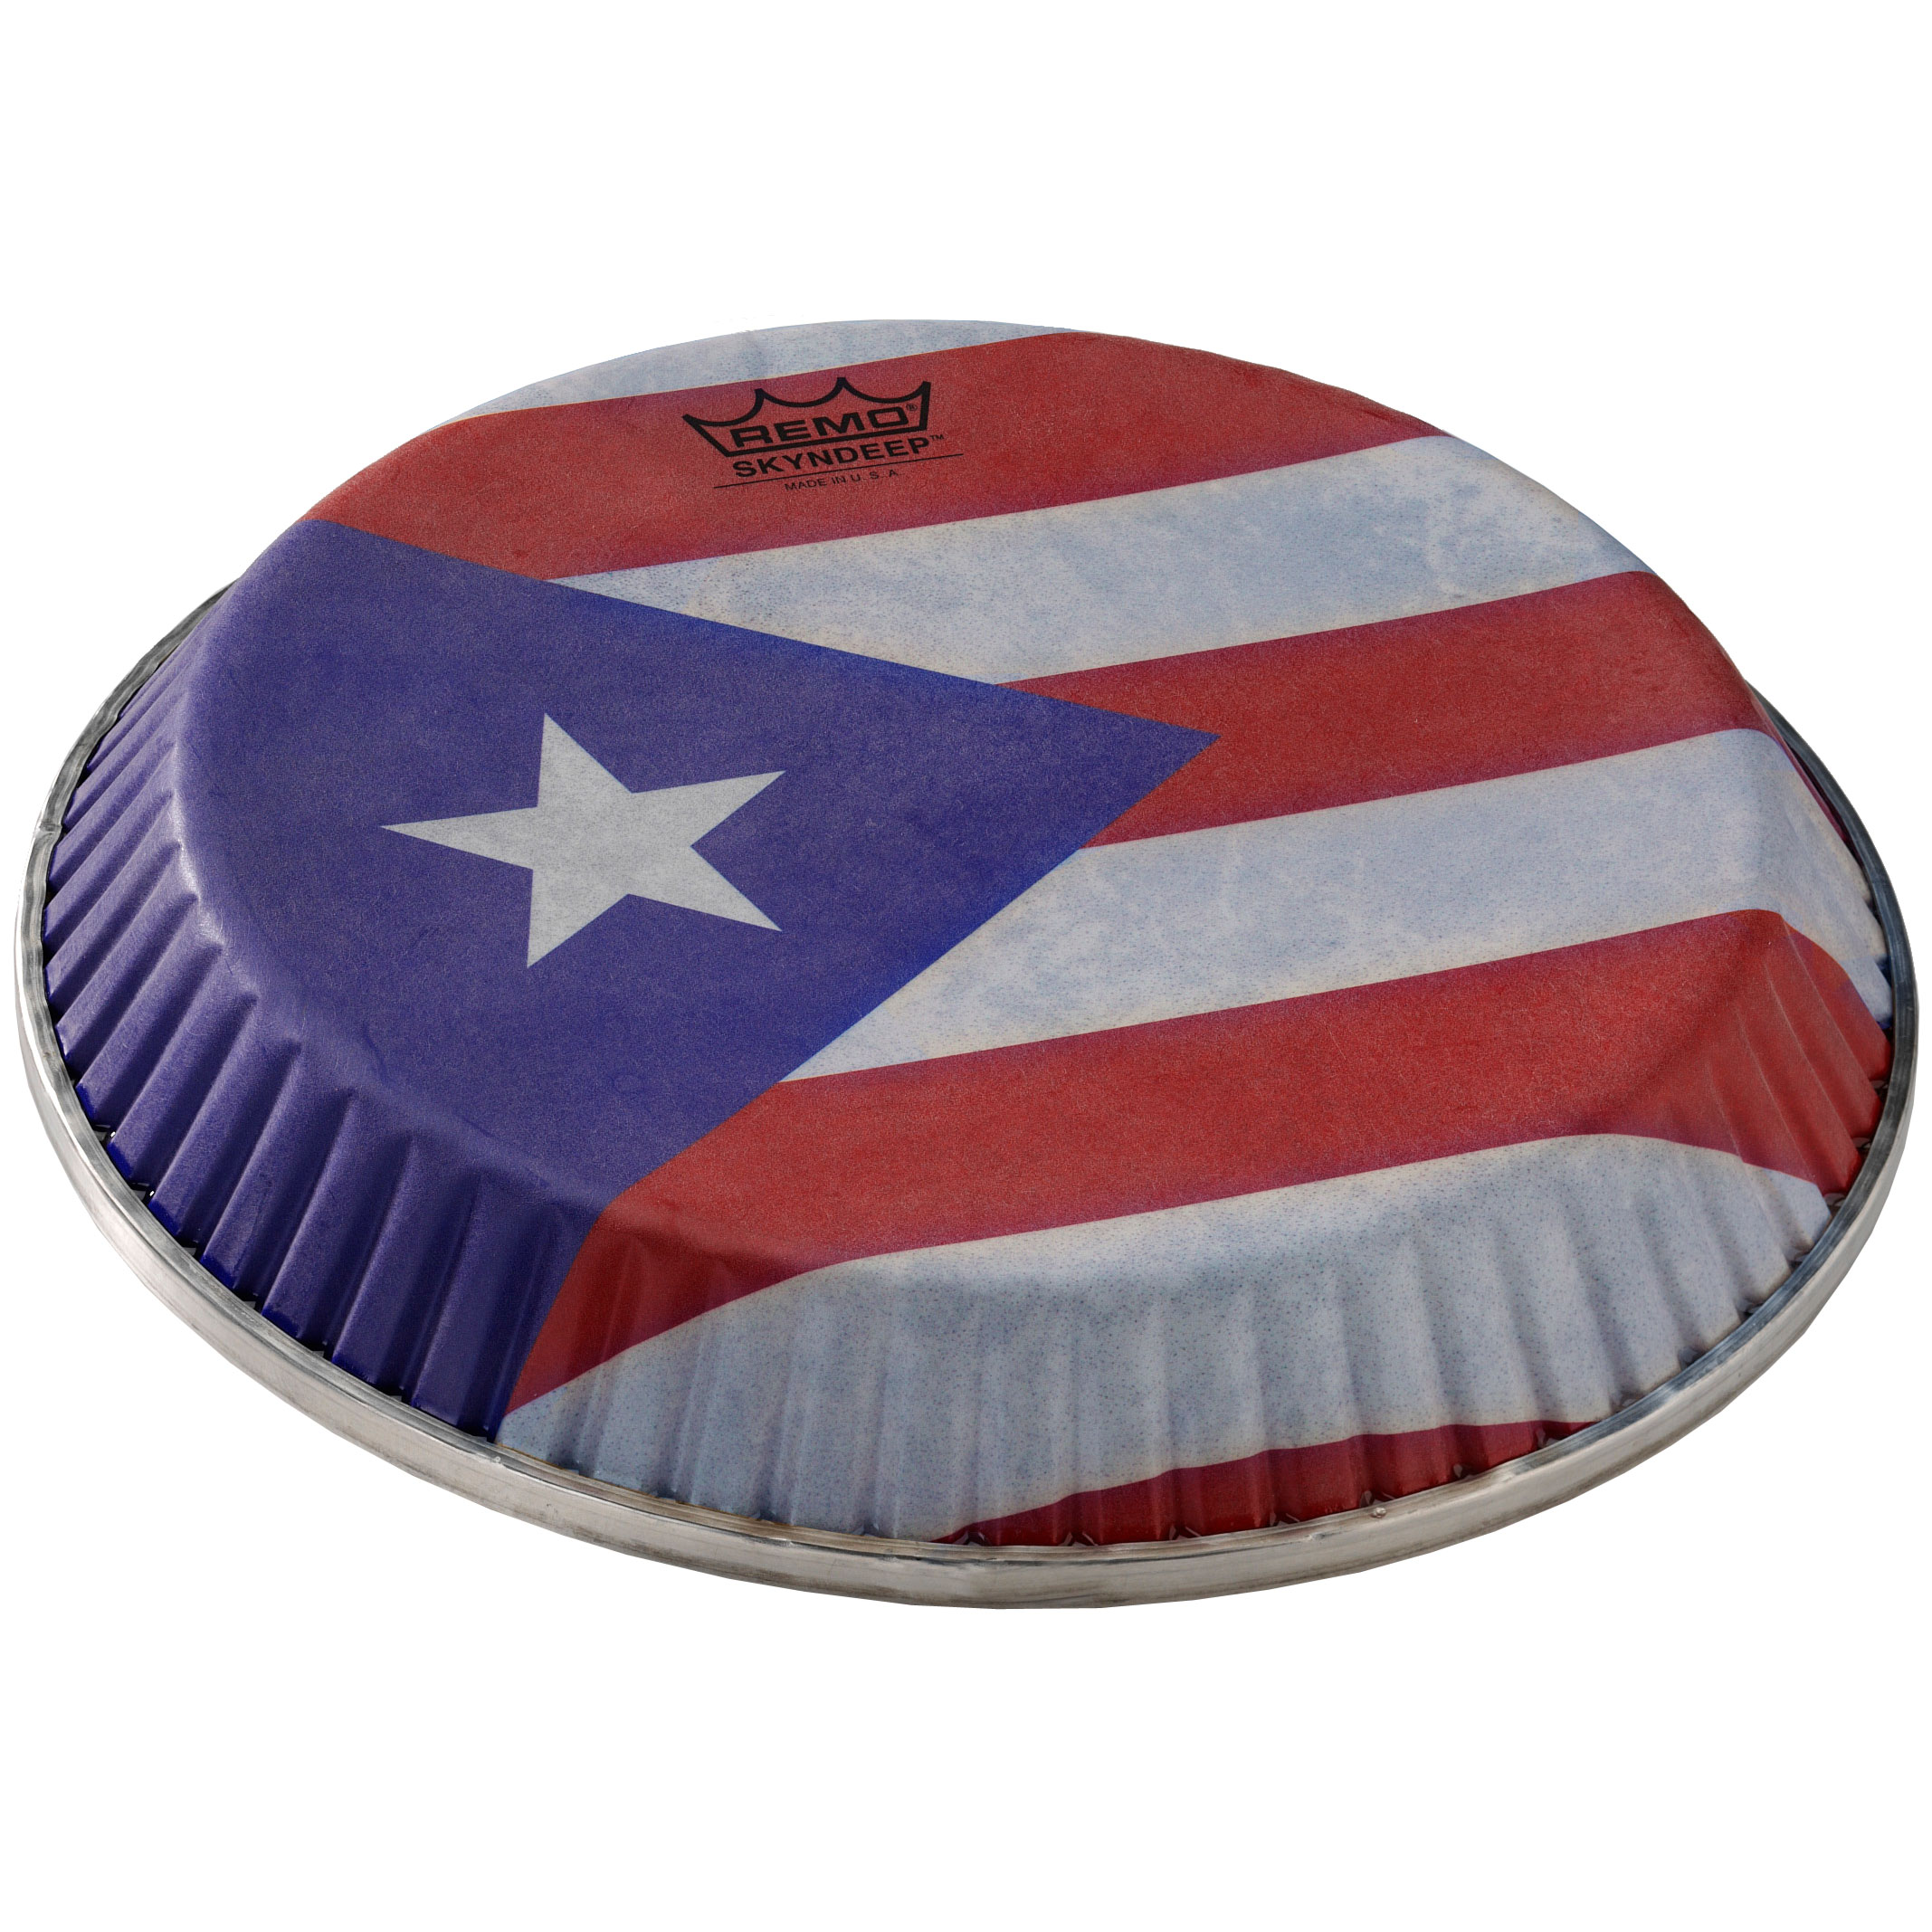 "Remo 10.75"" Symmetry Skyndeep Conga Drum Head (D2 Collar) with Puerto Rican Flag Graphic"